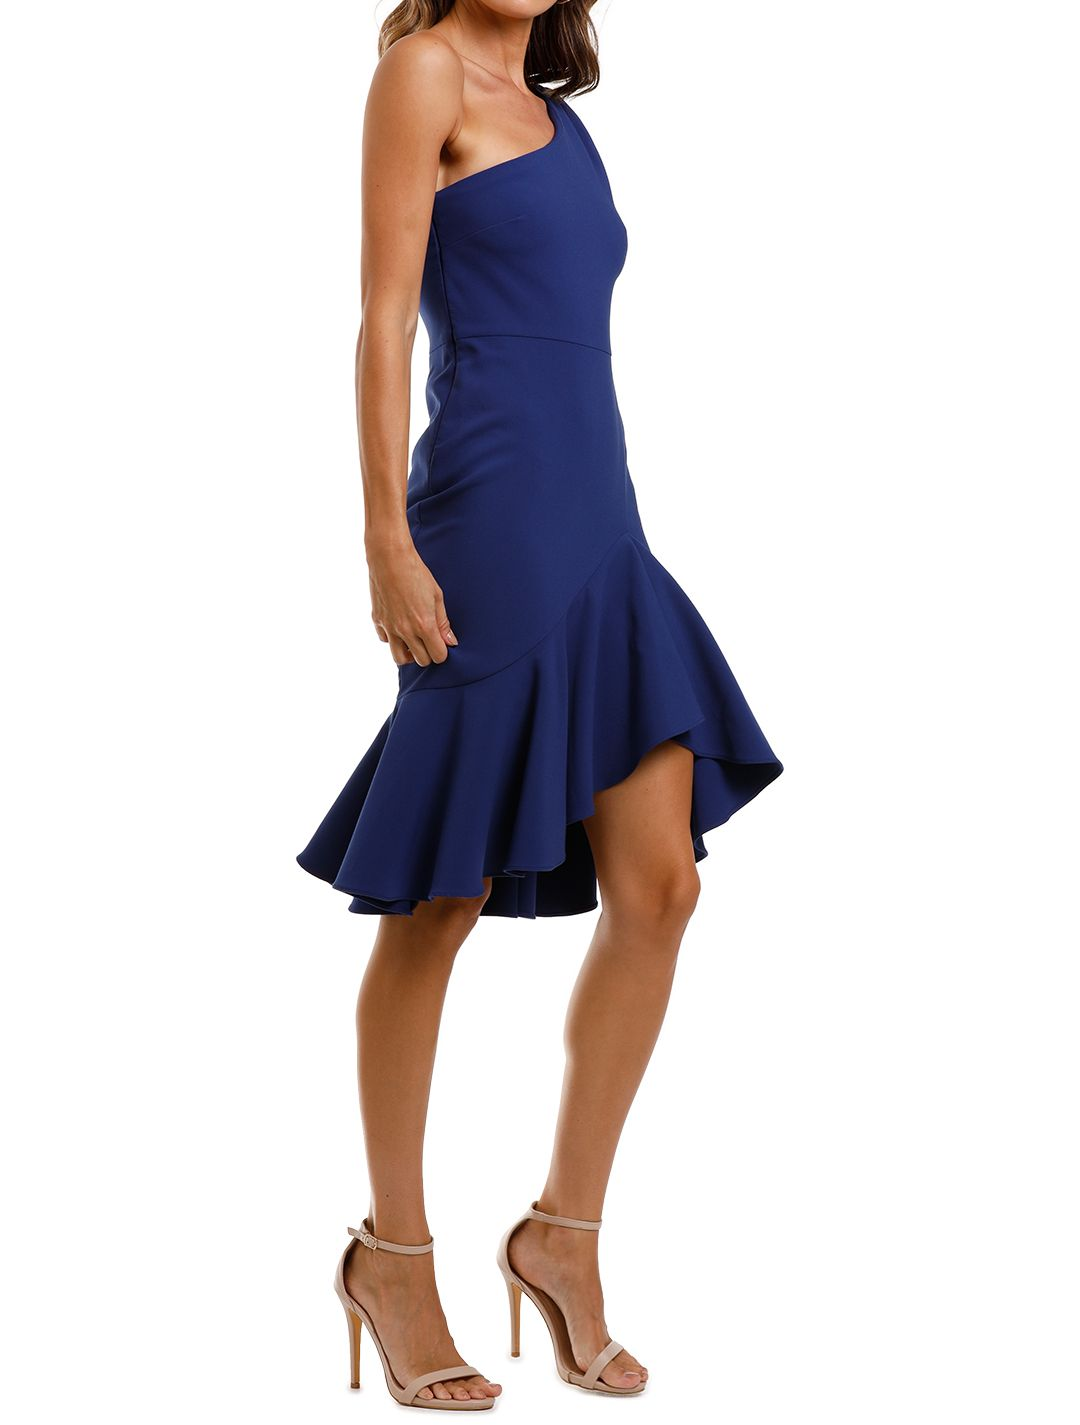 Likely NYC Rollins Dress Blue Mini